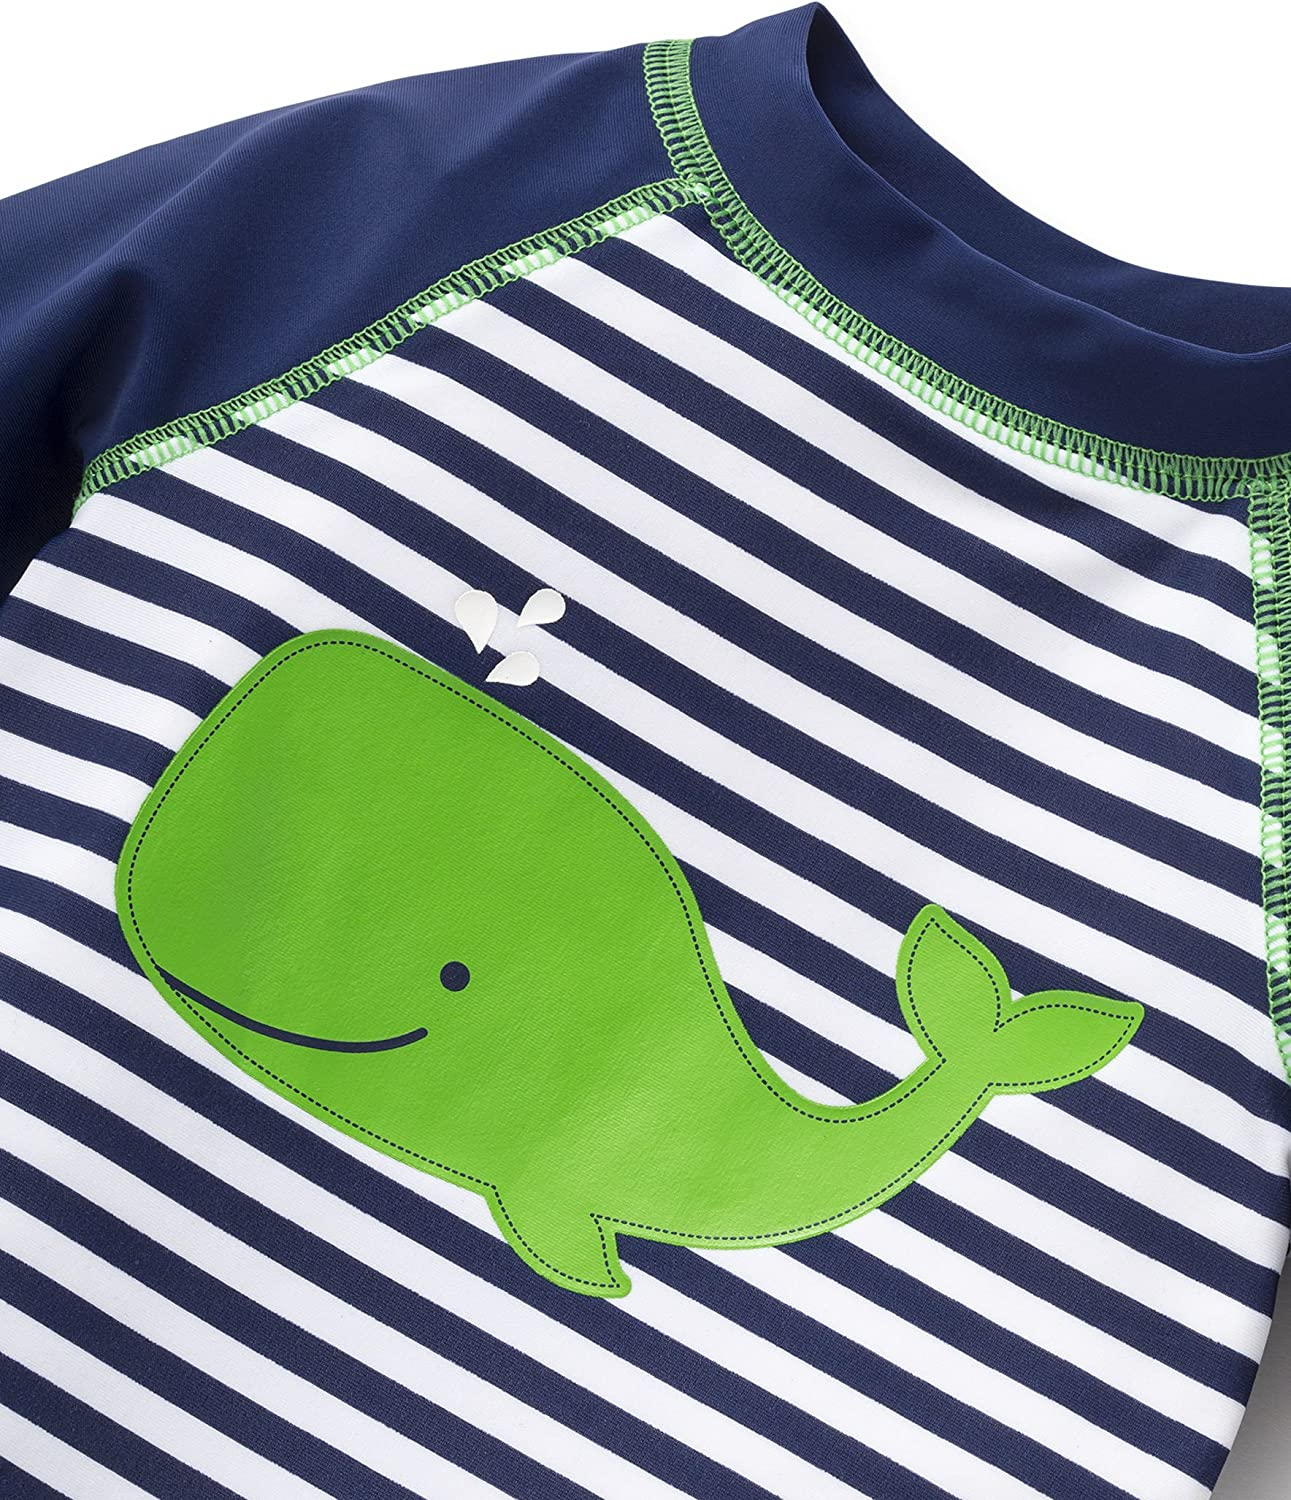 Short Sleeve Rashguard Swim Shirt Little Me Childrens Apparel Baby and Toddler Boys UPF 50